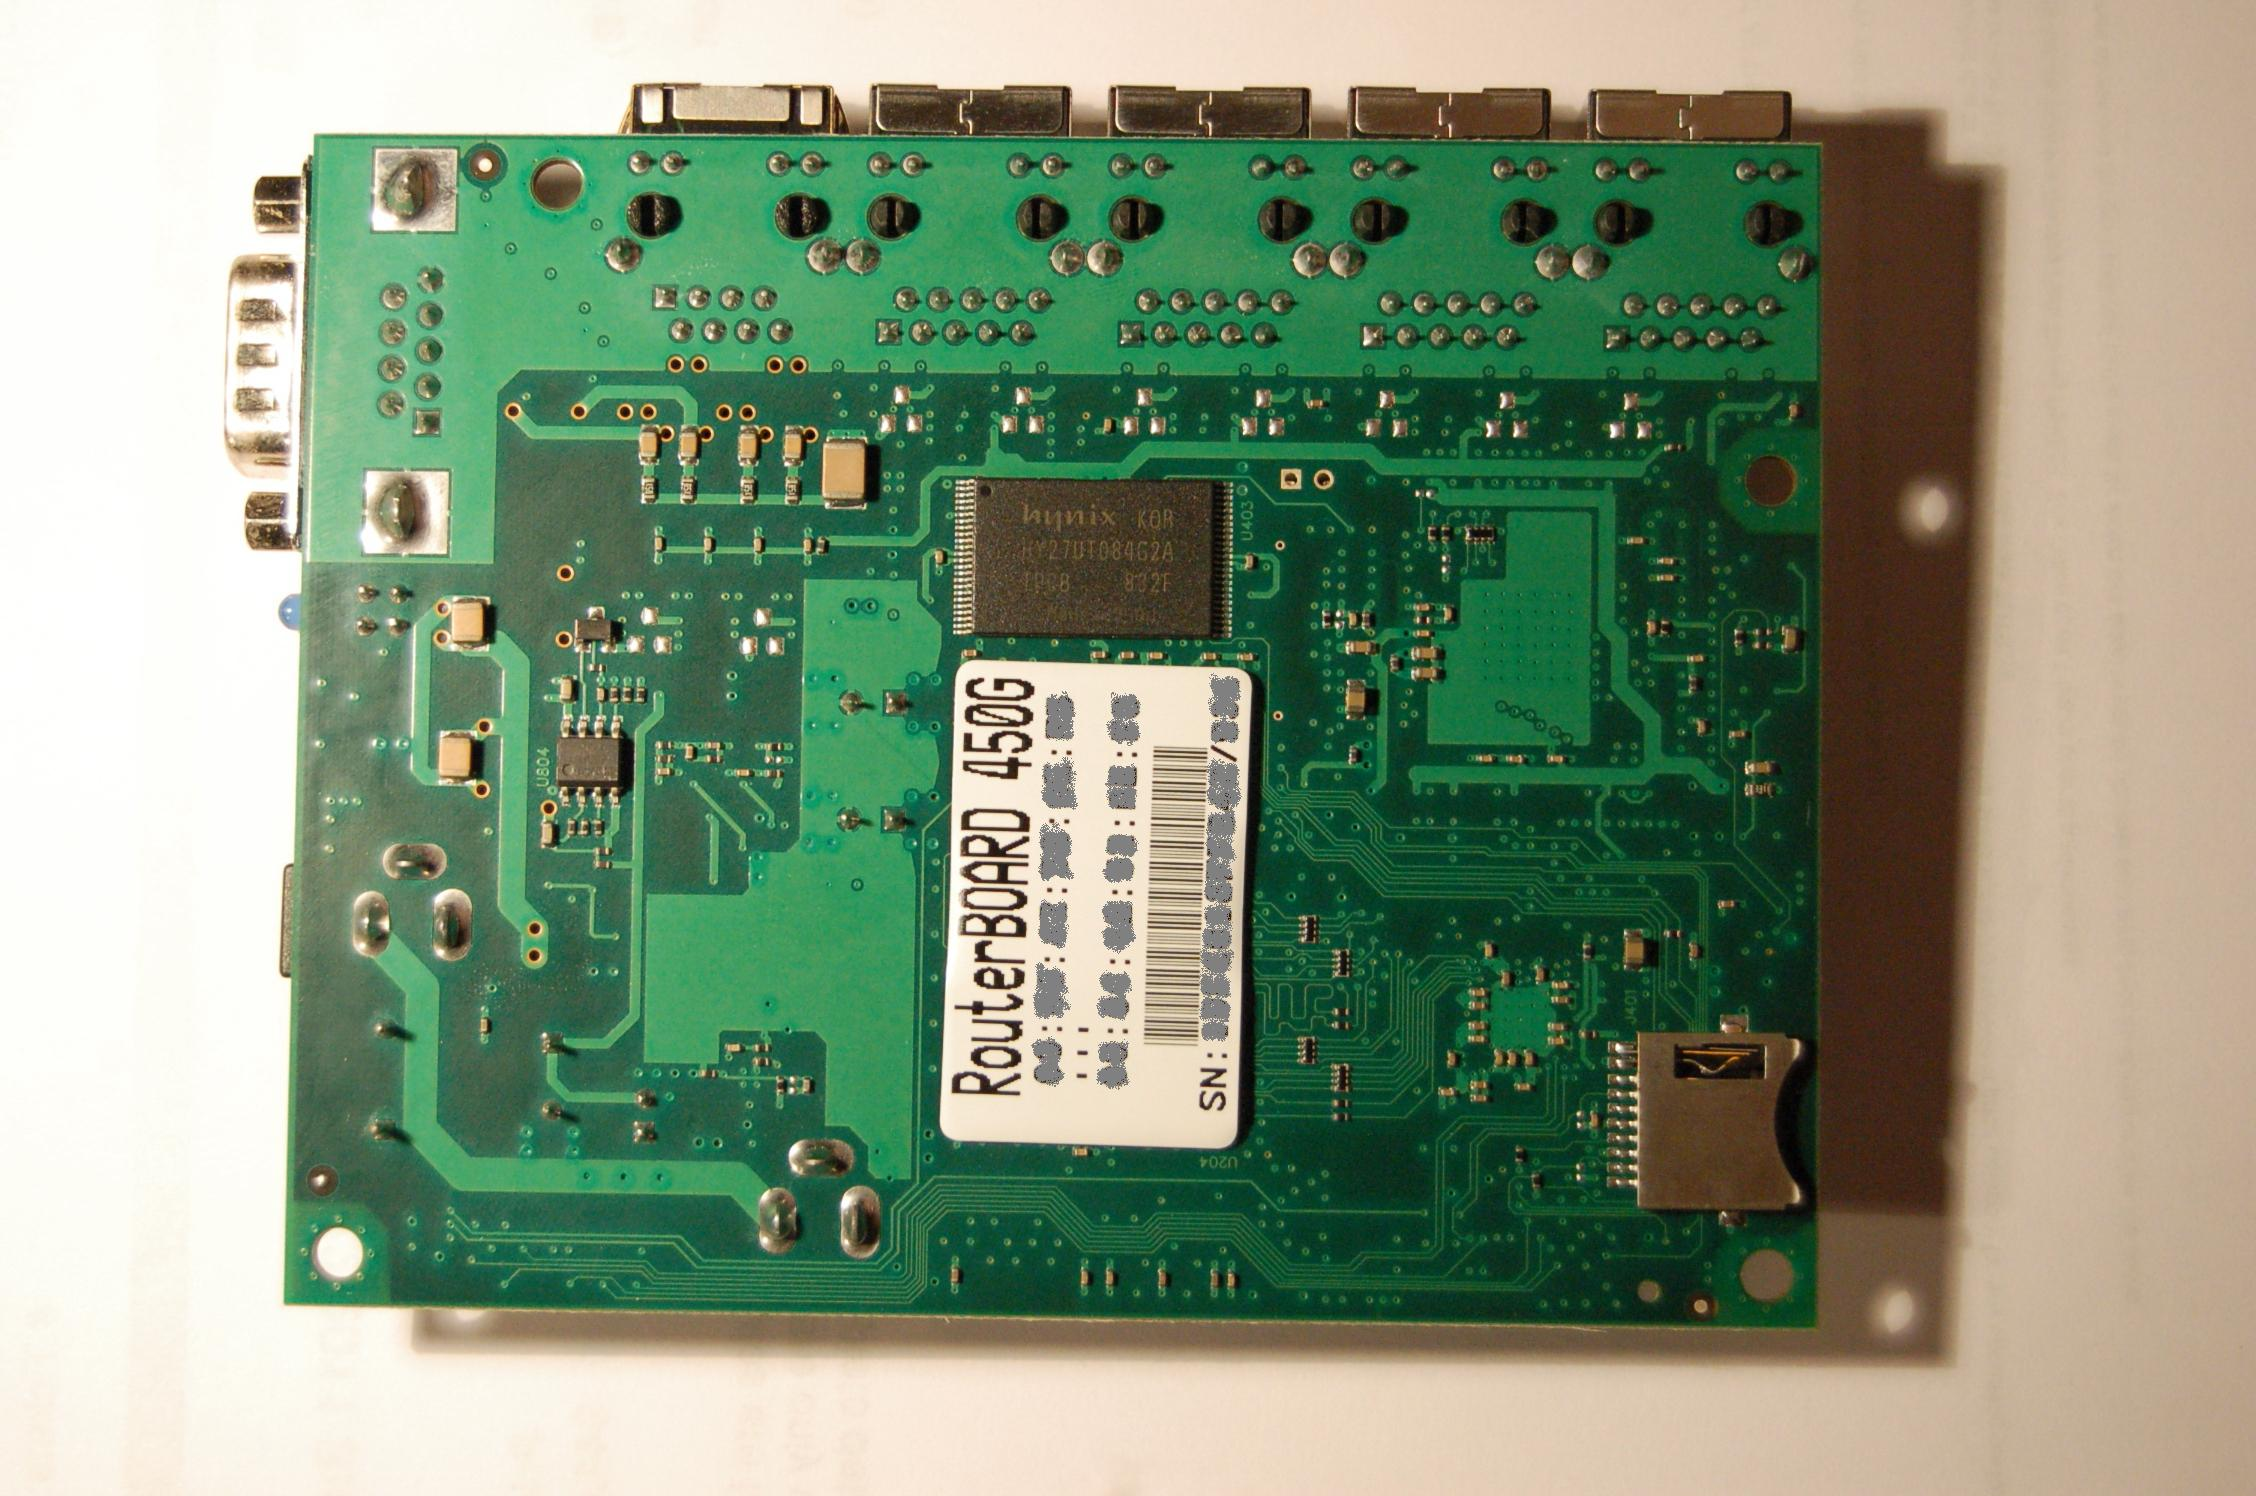 openwrt project mikrotik routerboard rb450g rh openwrt org mikrotik rb450g user manual routerboard 450g user manual